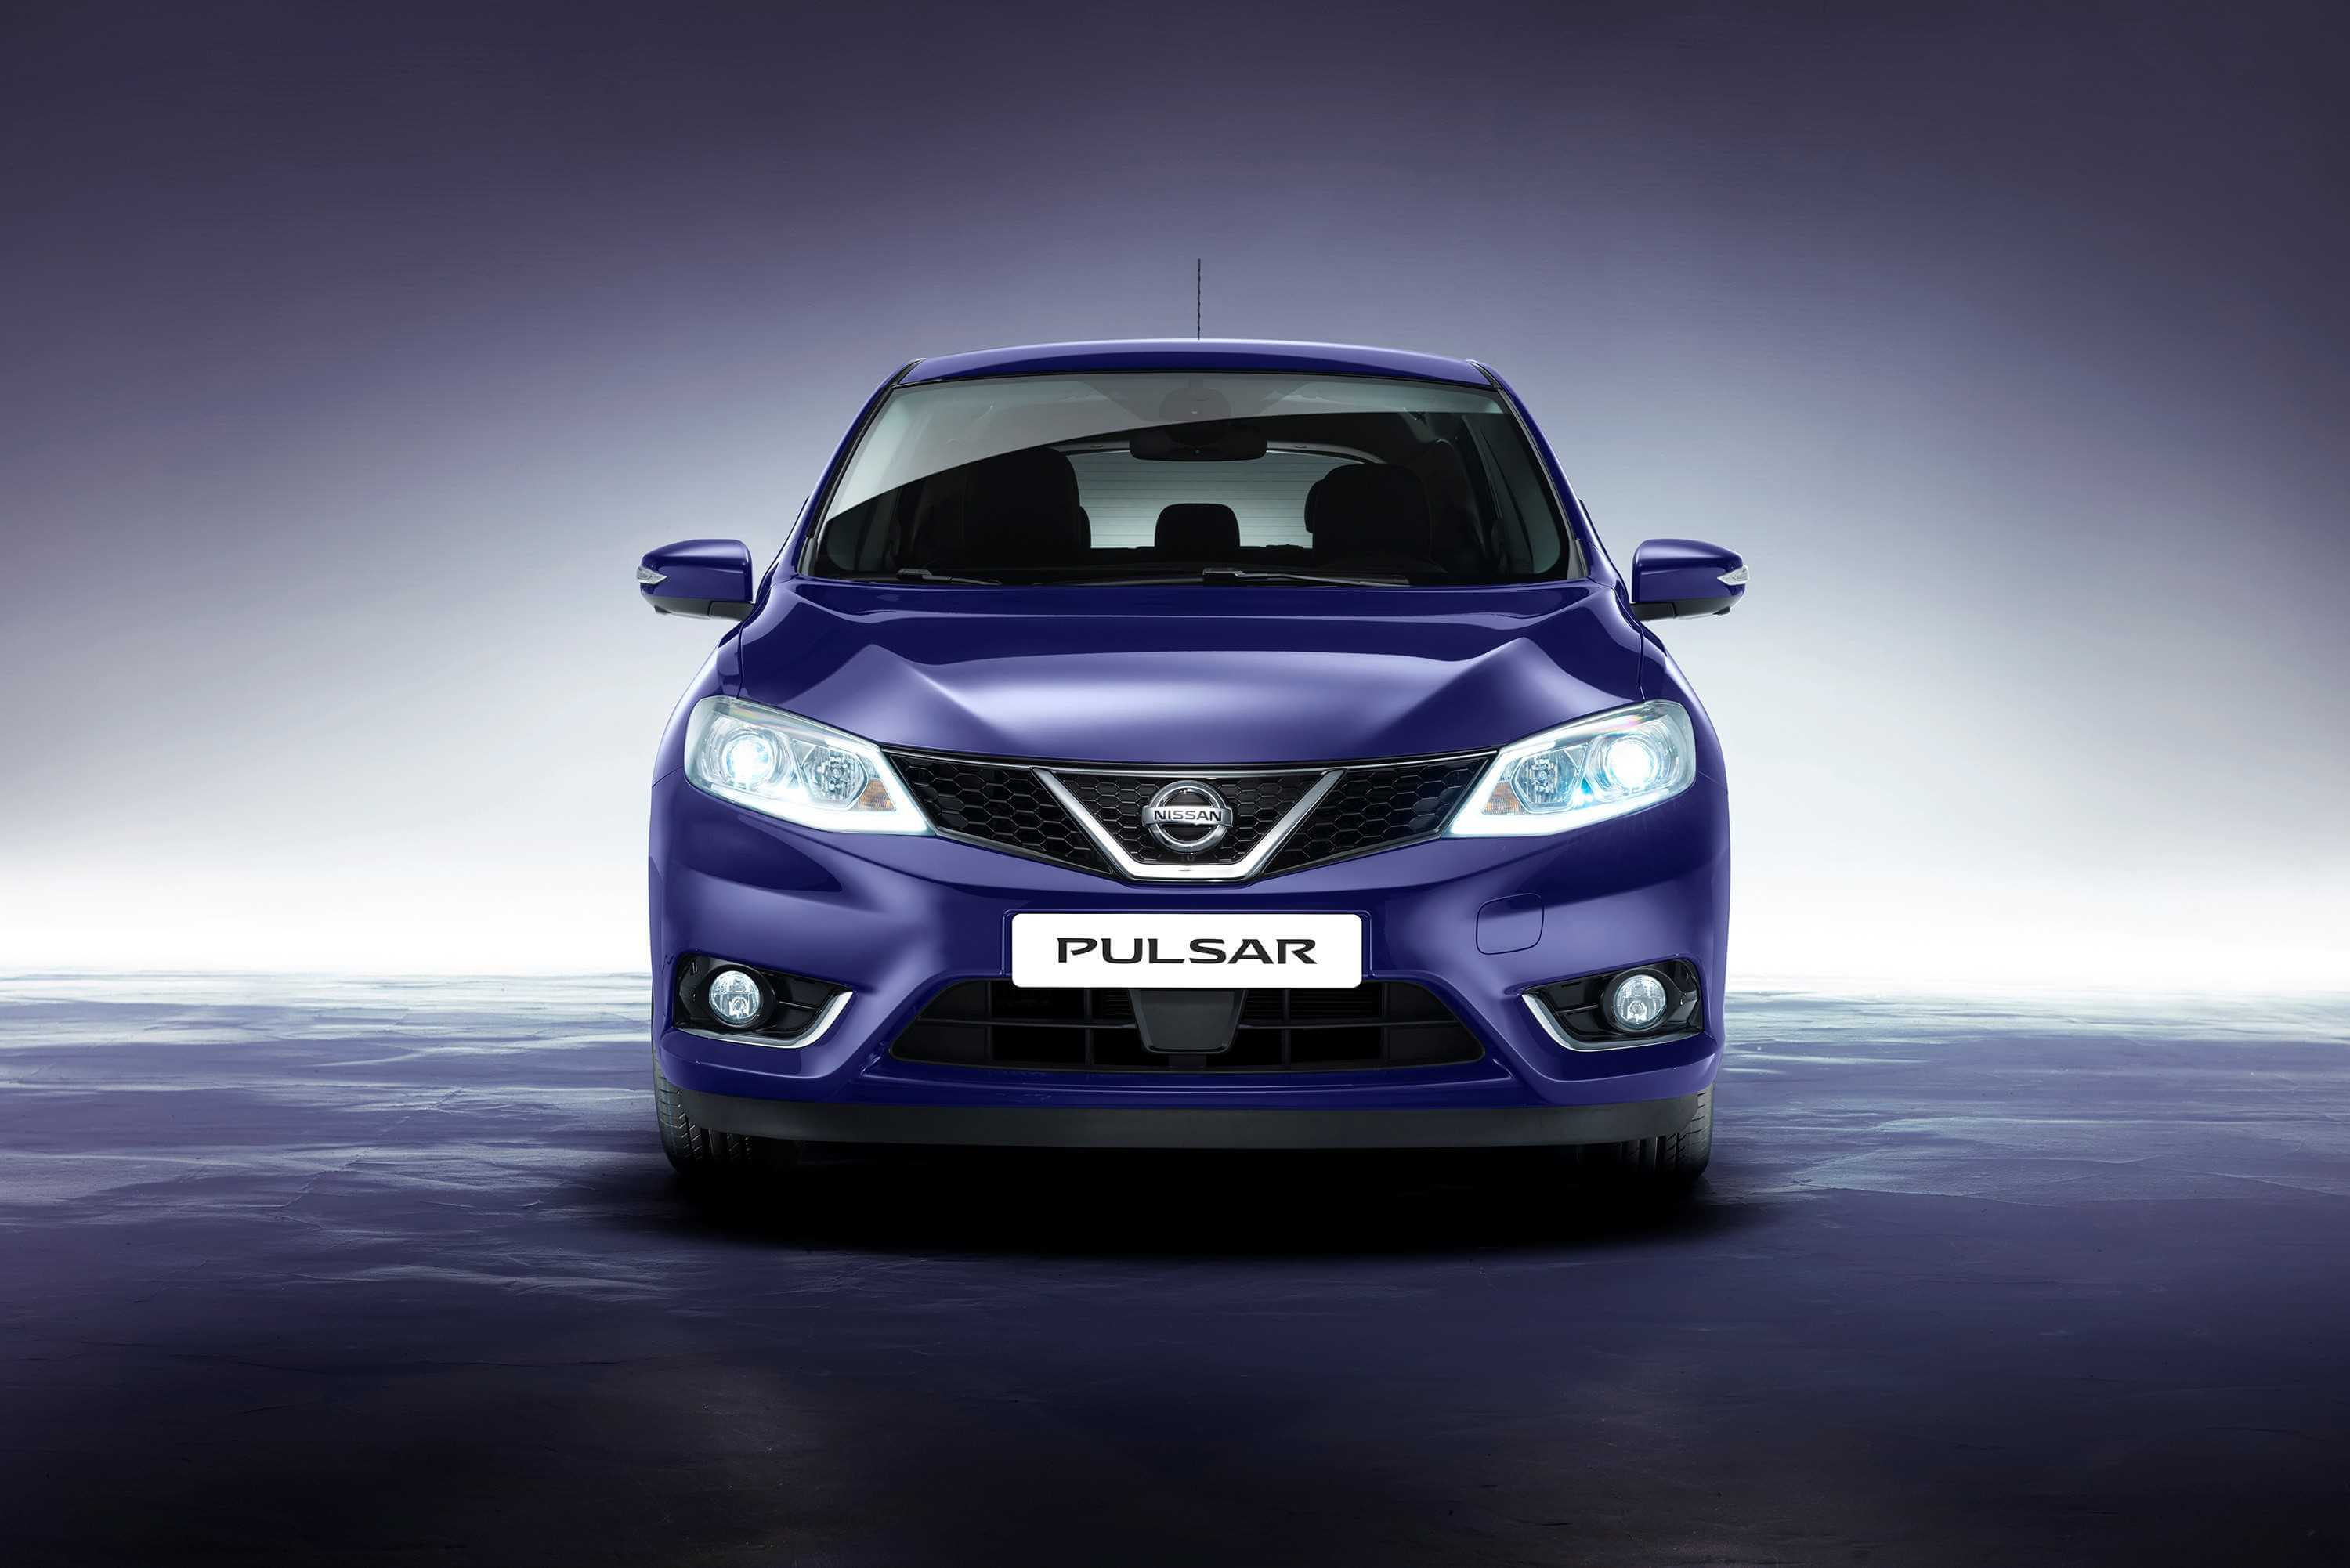 Say Yes to Nissan's Latest Pulsar